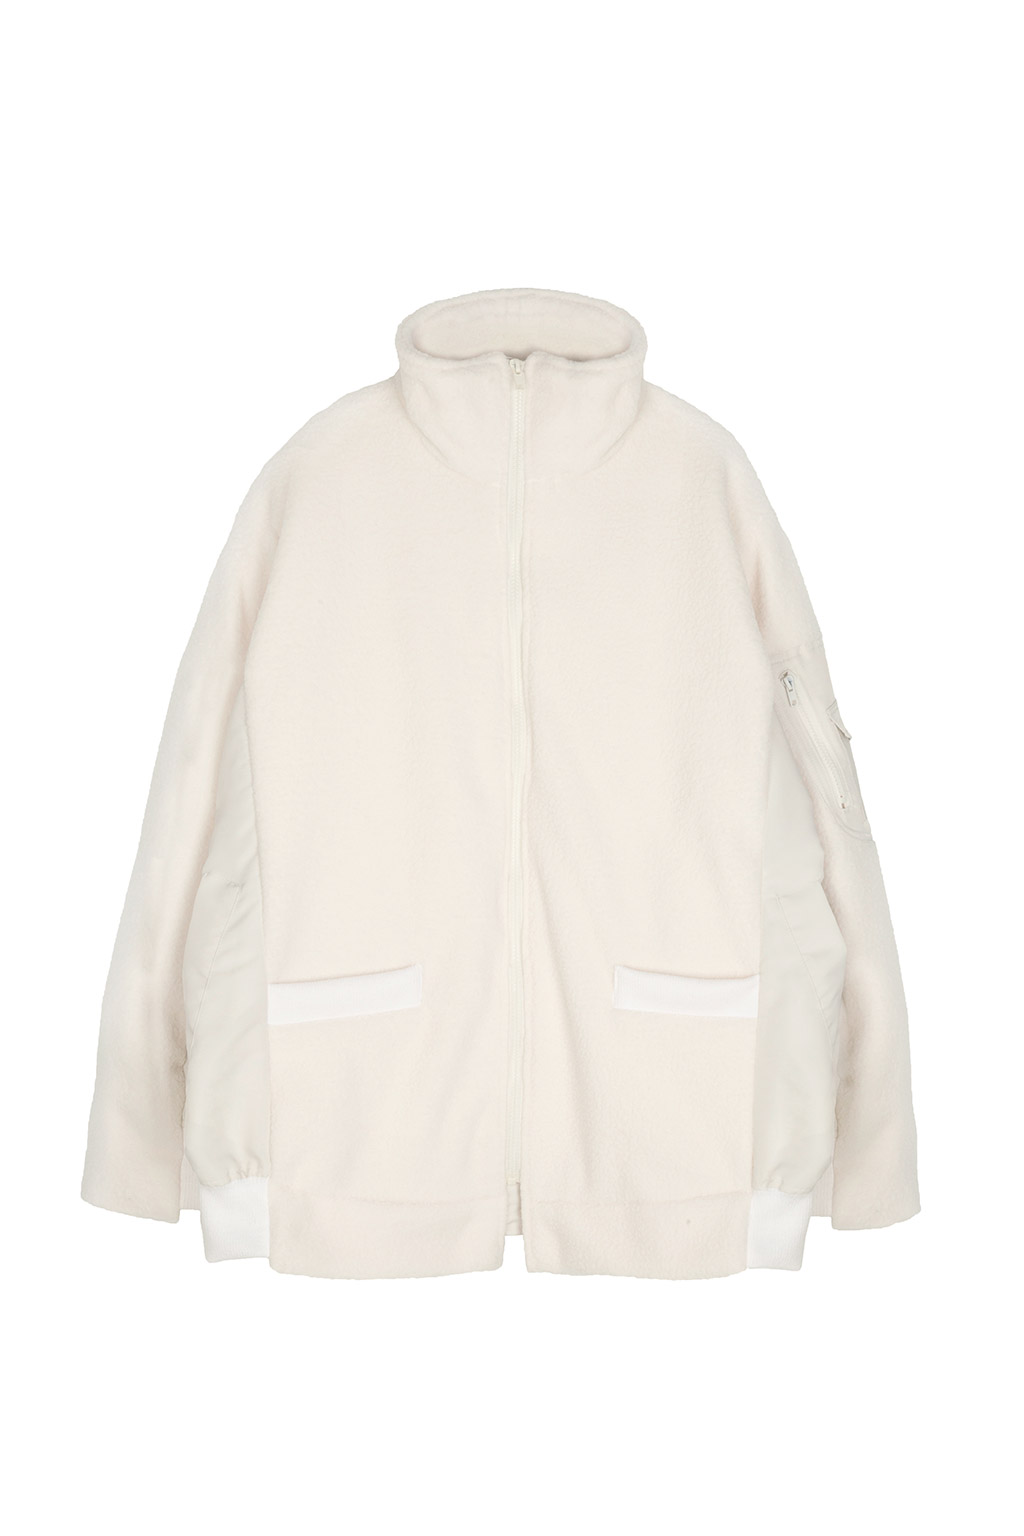 fleece docking ma-1 - ivory